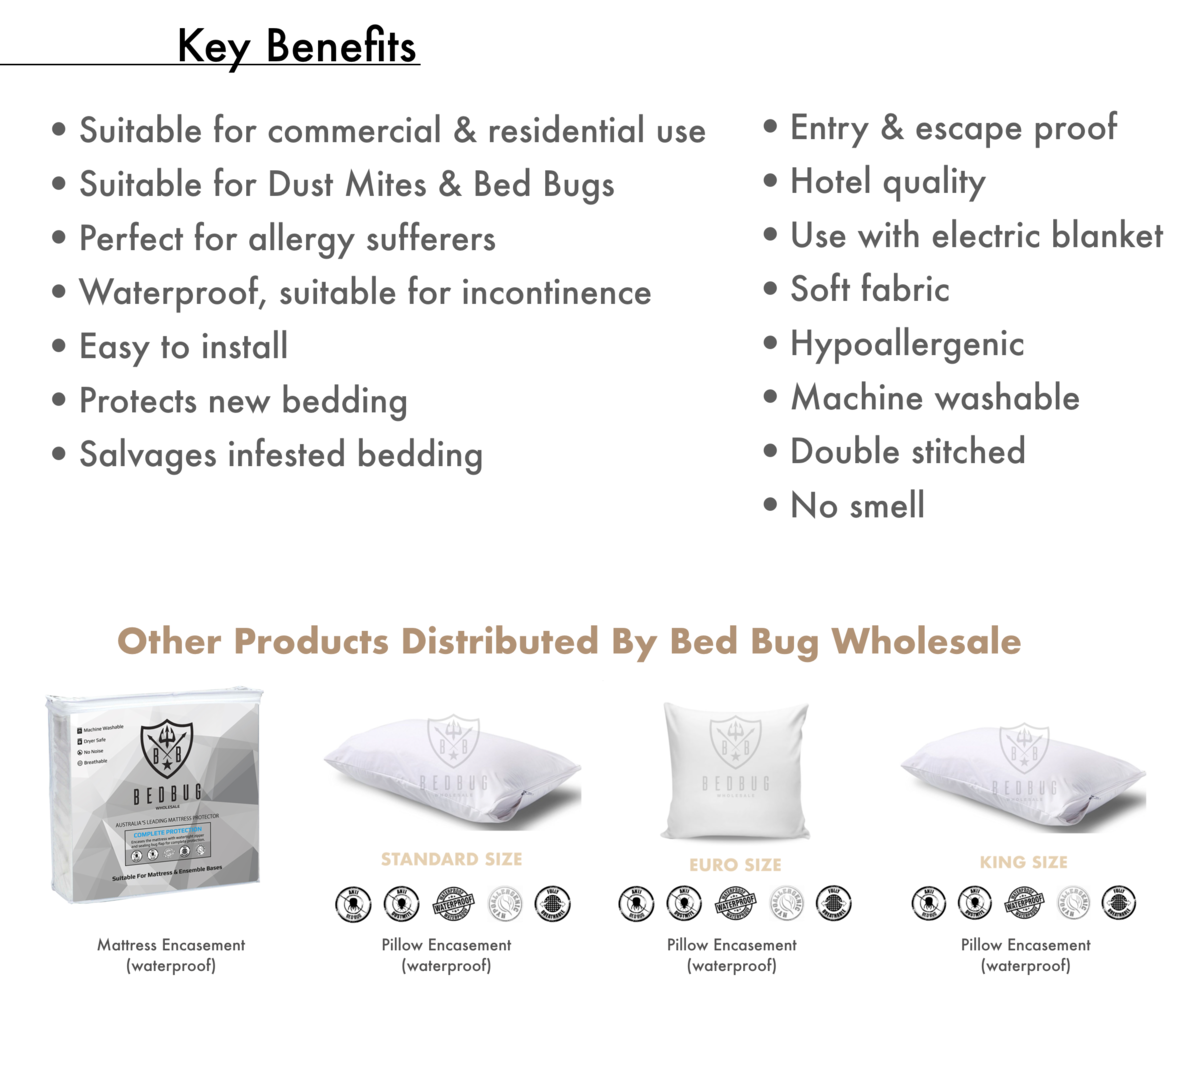 Waterproof Quilt Cover Key Benefits